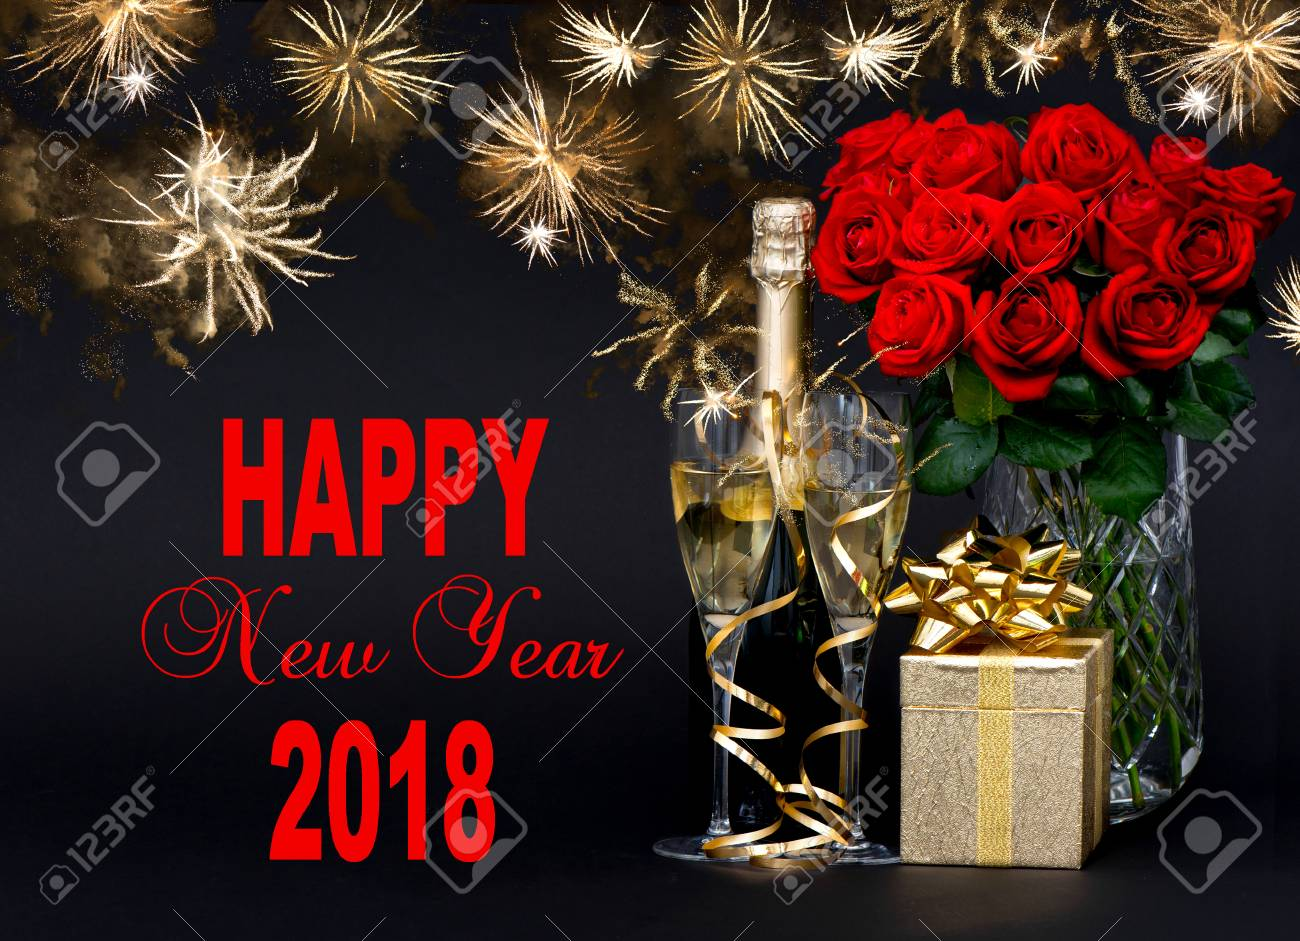 happy new year 2018 greetings card concept red roses bottle champagne golden